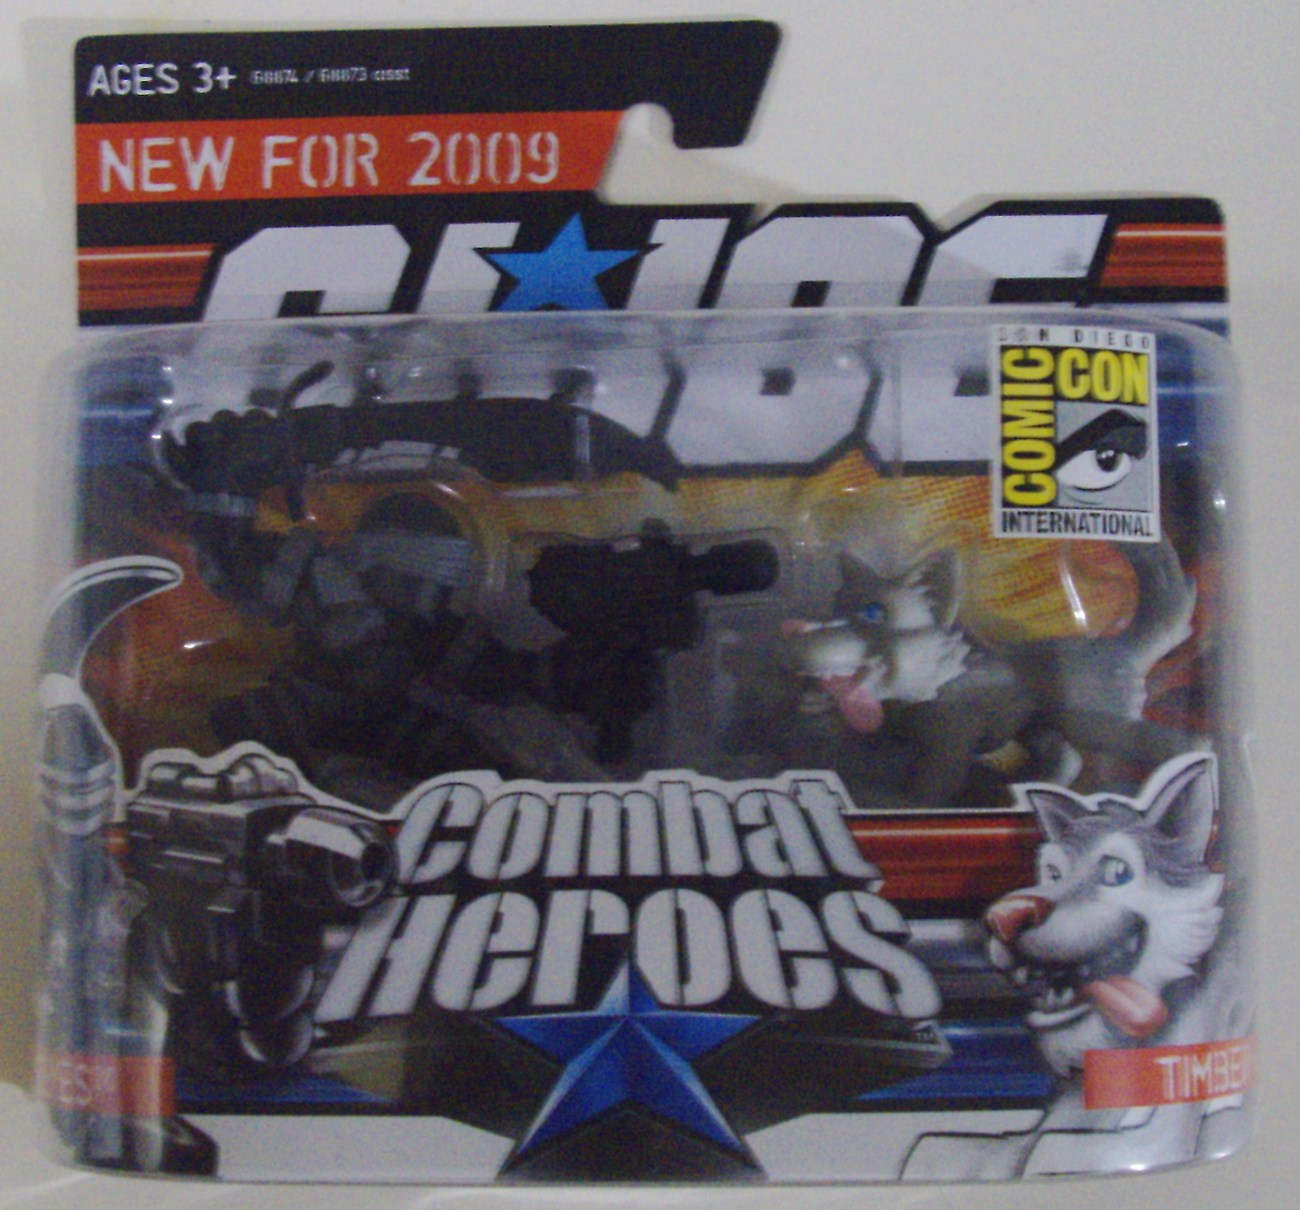 GI Joe Combat Heroes Snake Eyes w/ Timber 2009 San Diego Comic Con SDCC - New